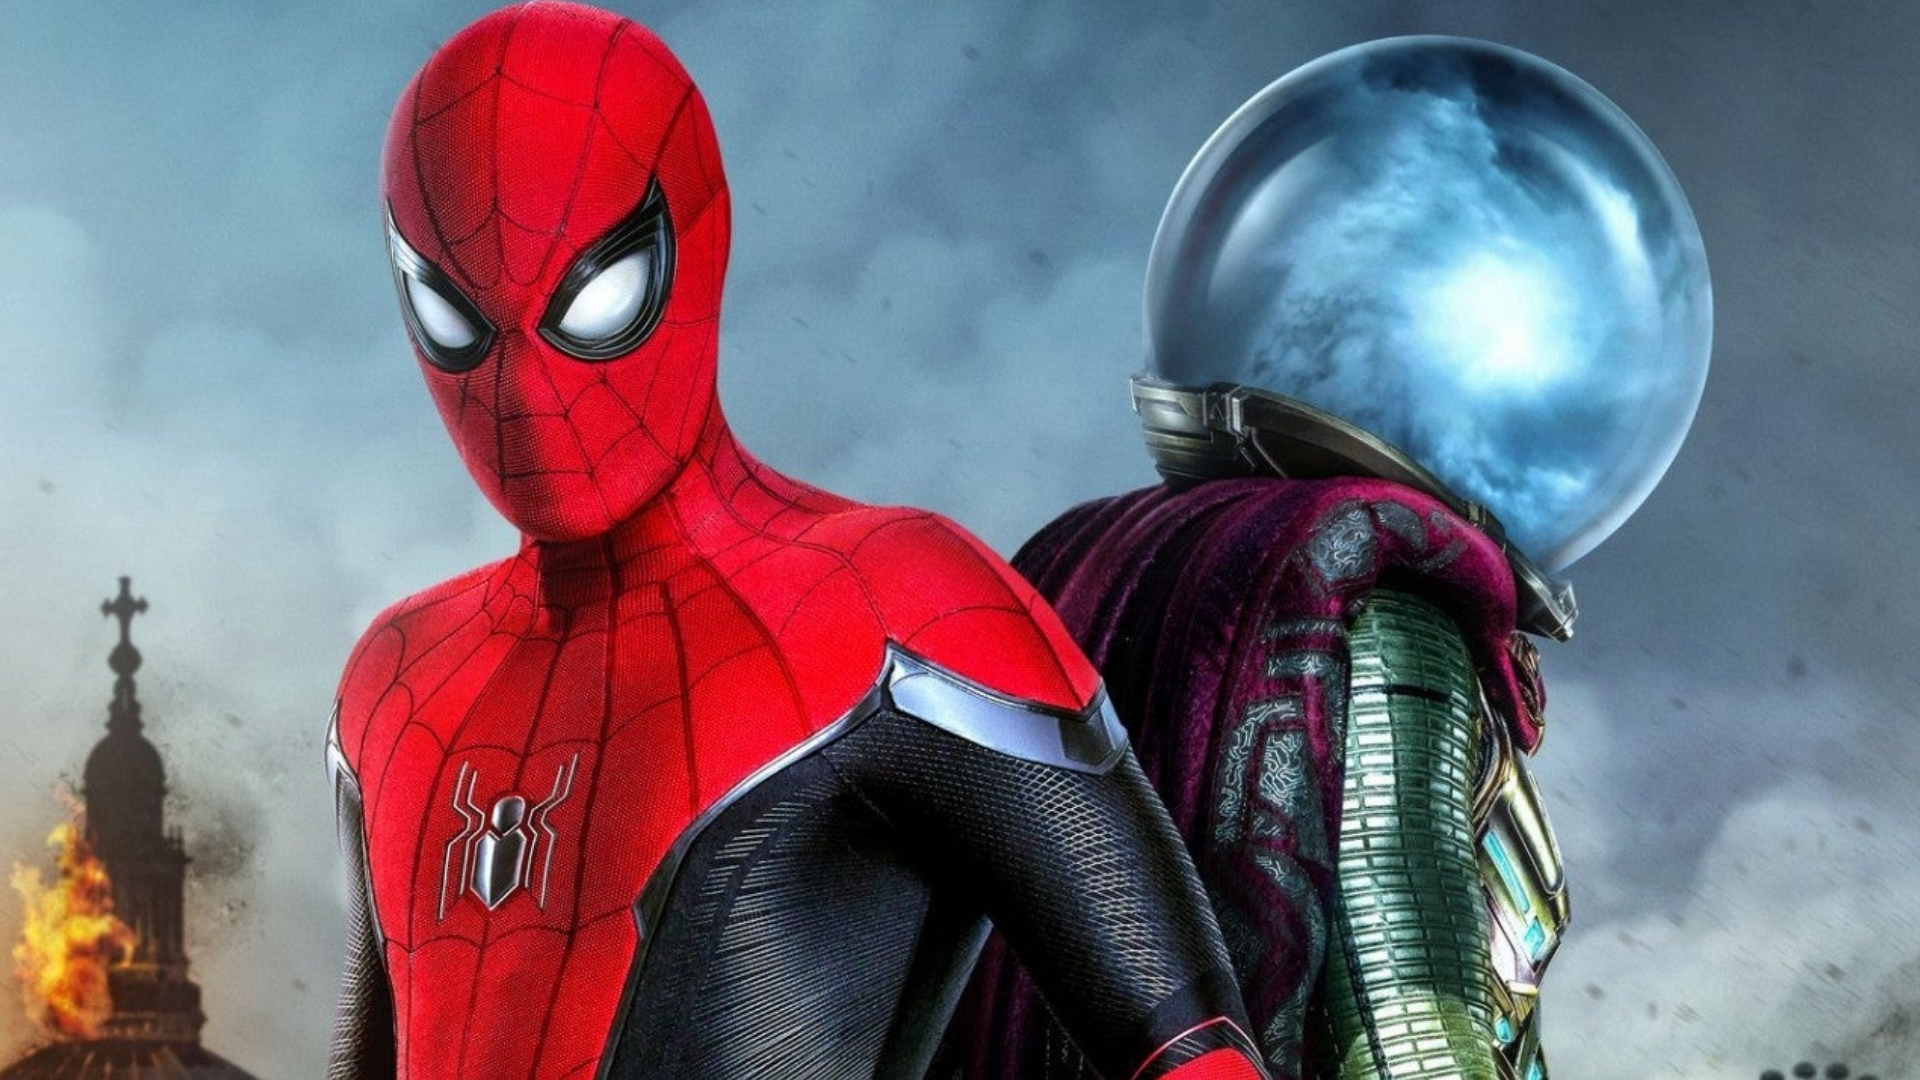 Spider Man And Mysterio Wallpaper Hd Download Free Hd Wallpapers